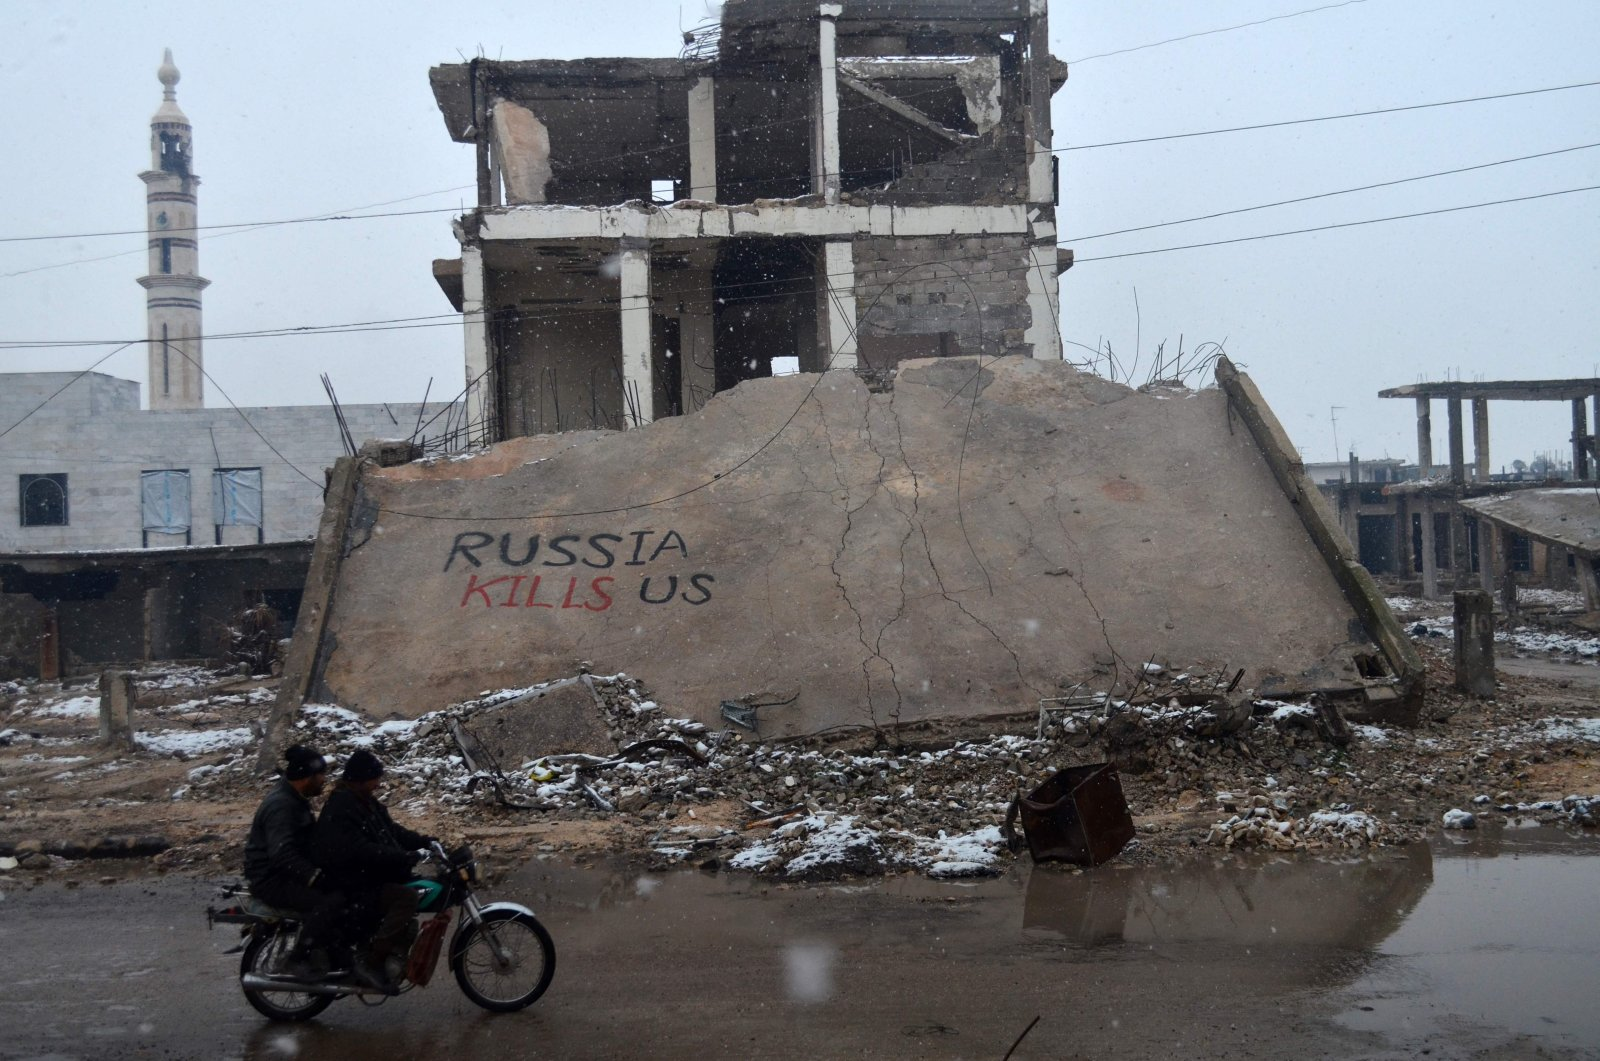 """Syrians ride a motorbike past a collapsed building with graffiti reading """"Russia kills us"""" in the central Syrian town of Talbisseh in Homs province, Syria, Jan. 1, 2016. (AFP Photo)"""